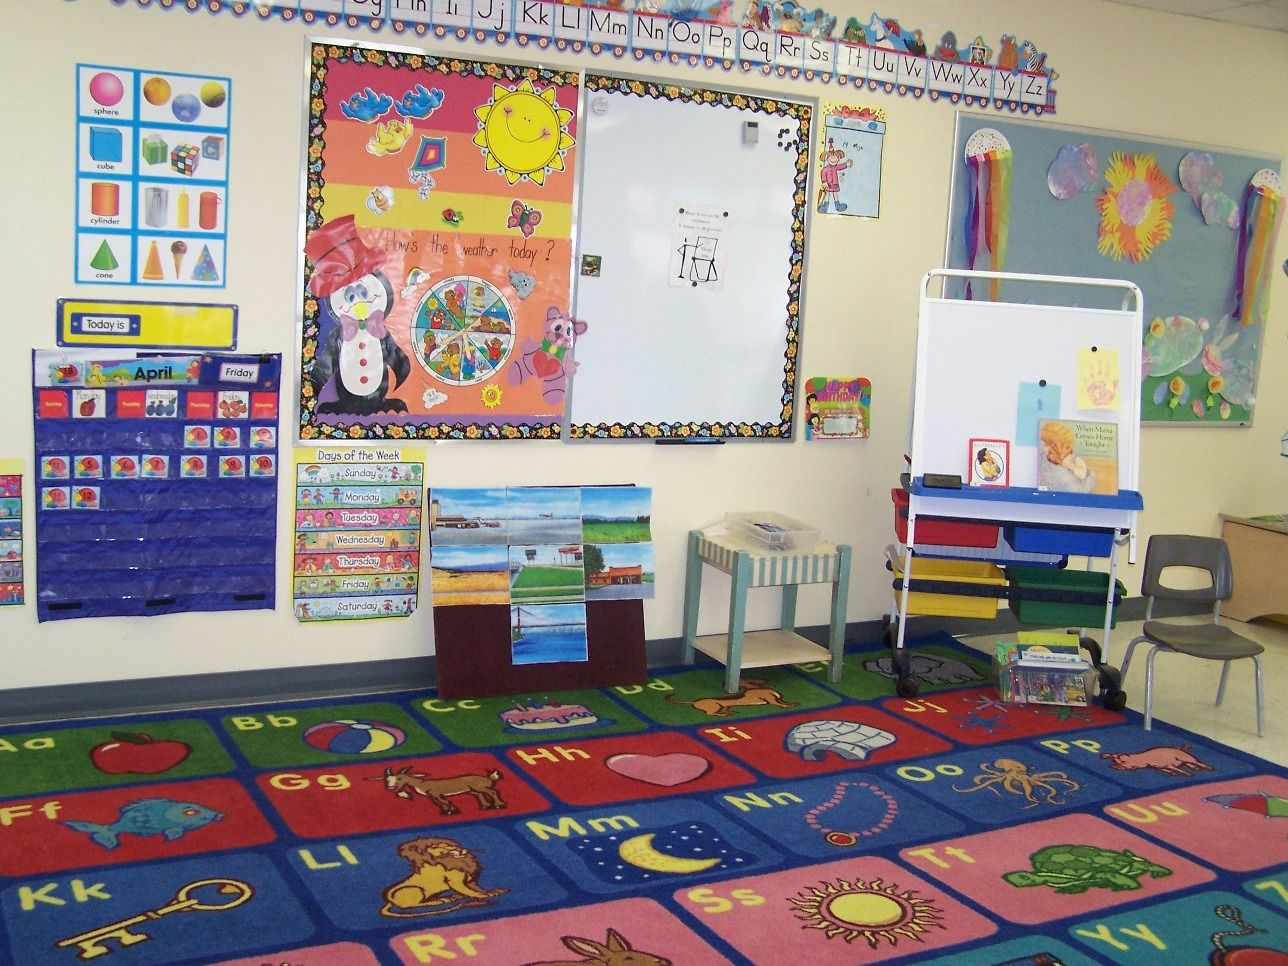 Classroom Decoration For Nursery Class : My classroom will be full of learning. numbers shapes and letters